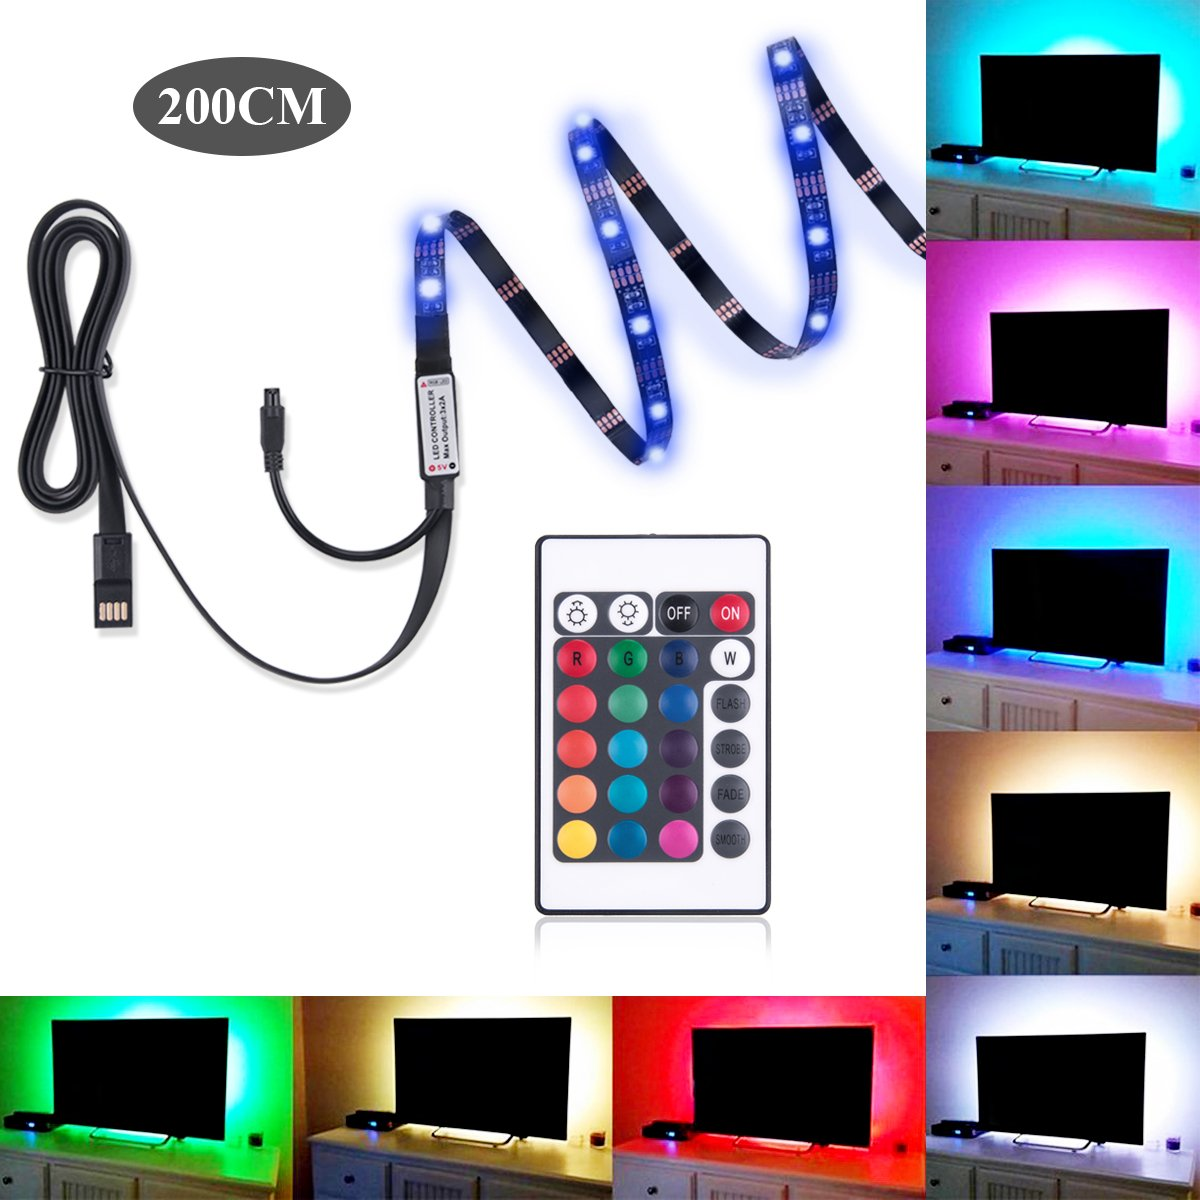 Bias Lighting for HDTV Ashine TV Backlight 5050 RGB Color Changing LED Strip Lights USB Powered Background Lighting for Flat TV Screen 78 Inches